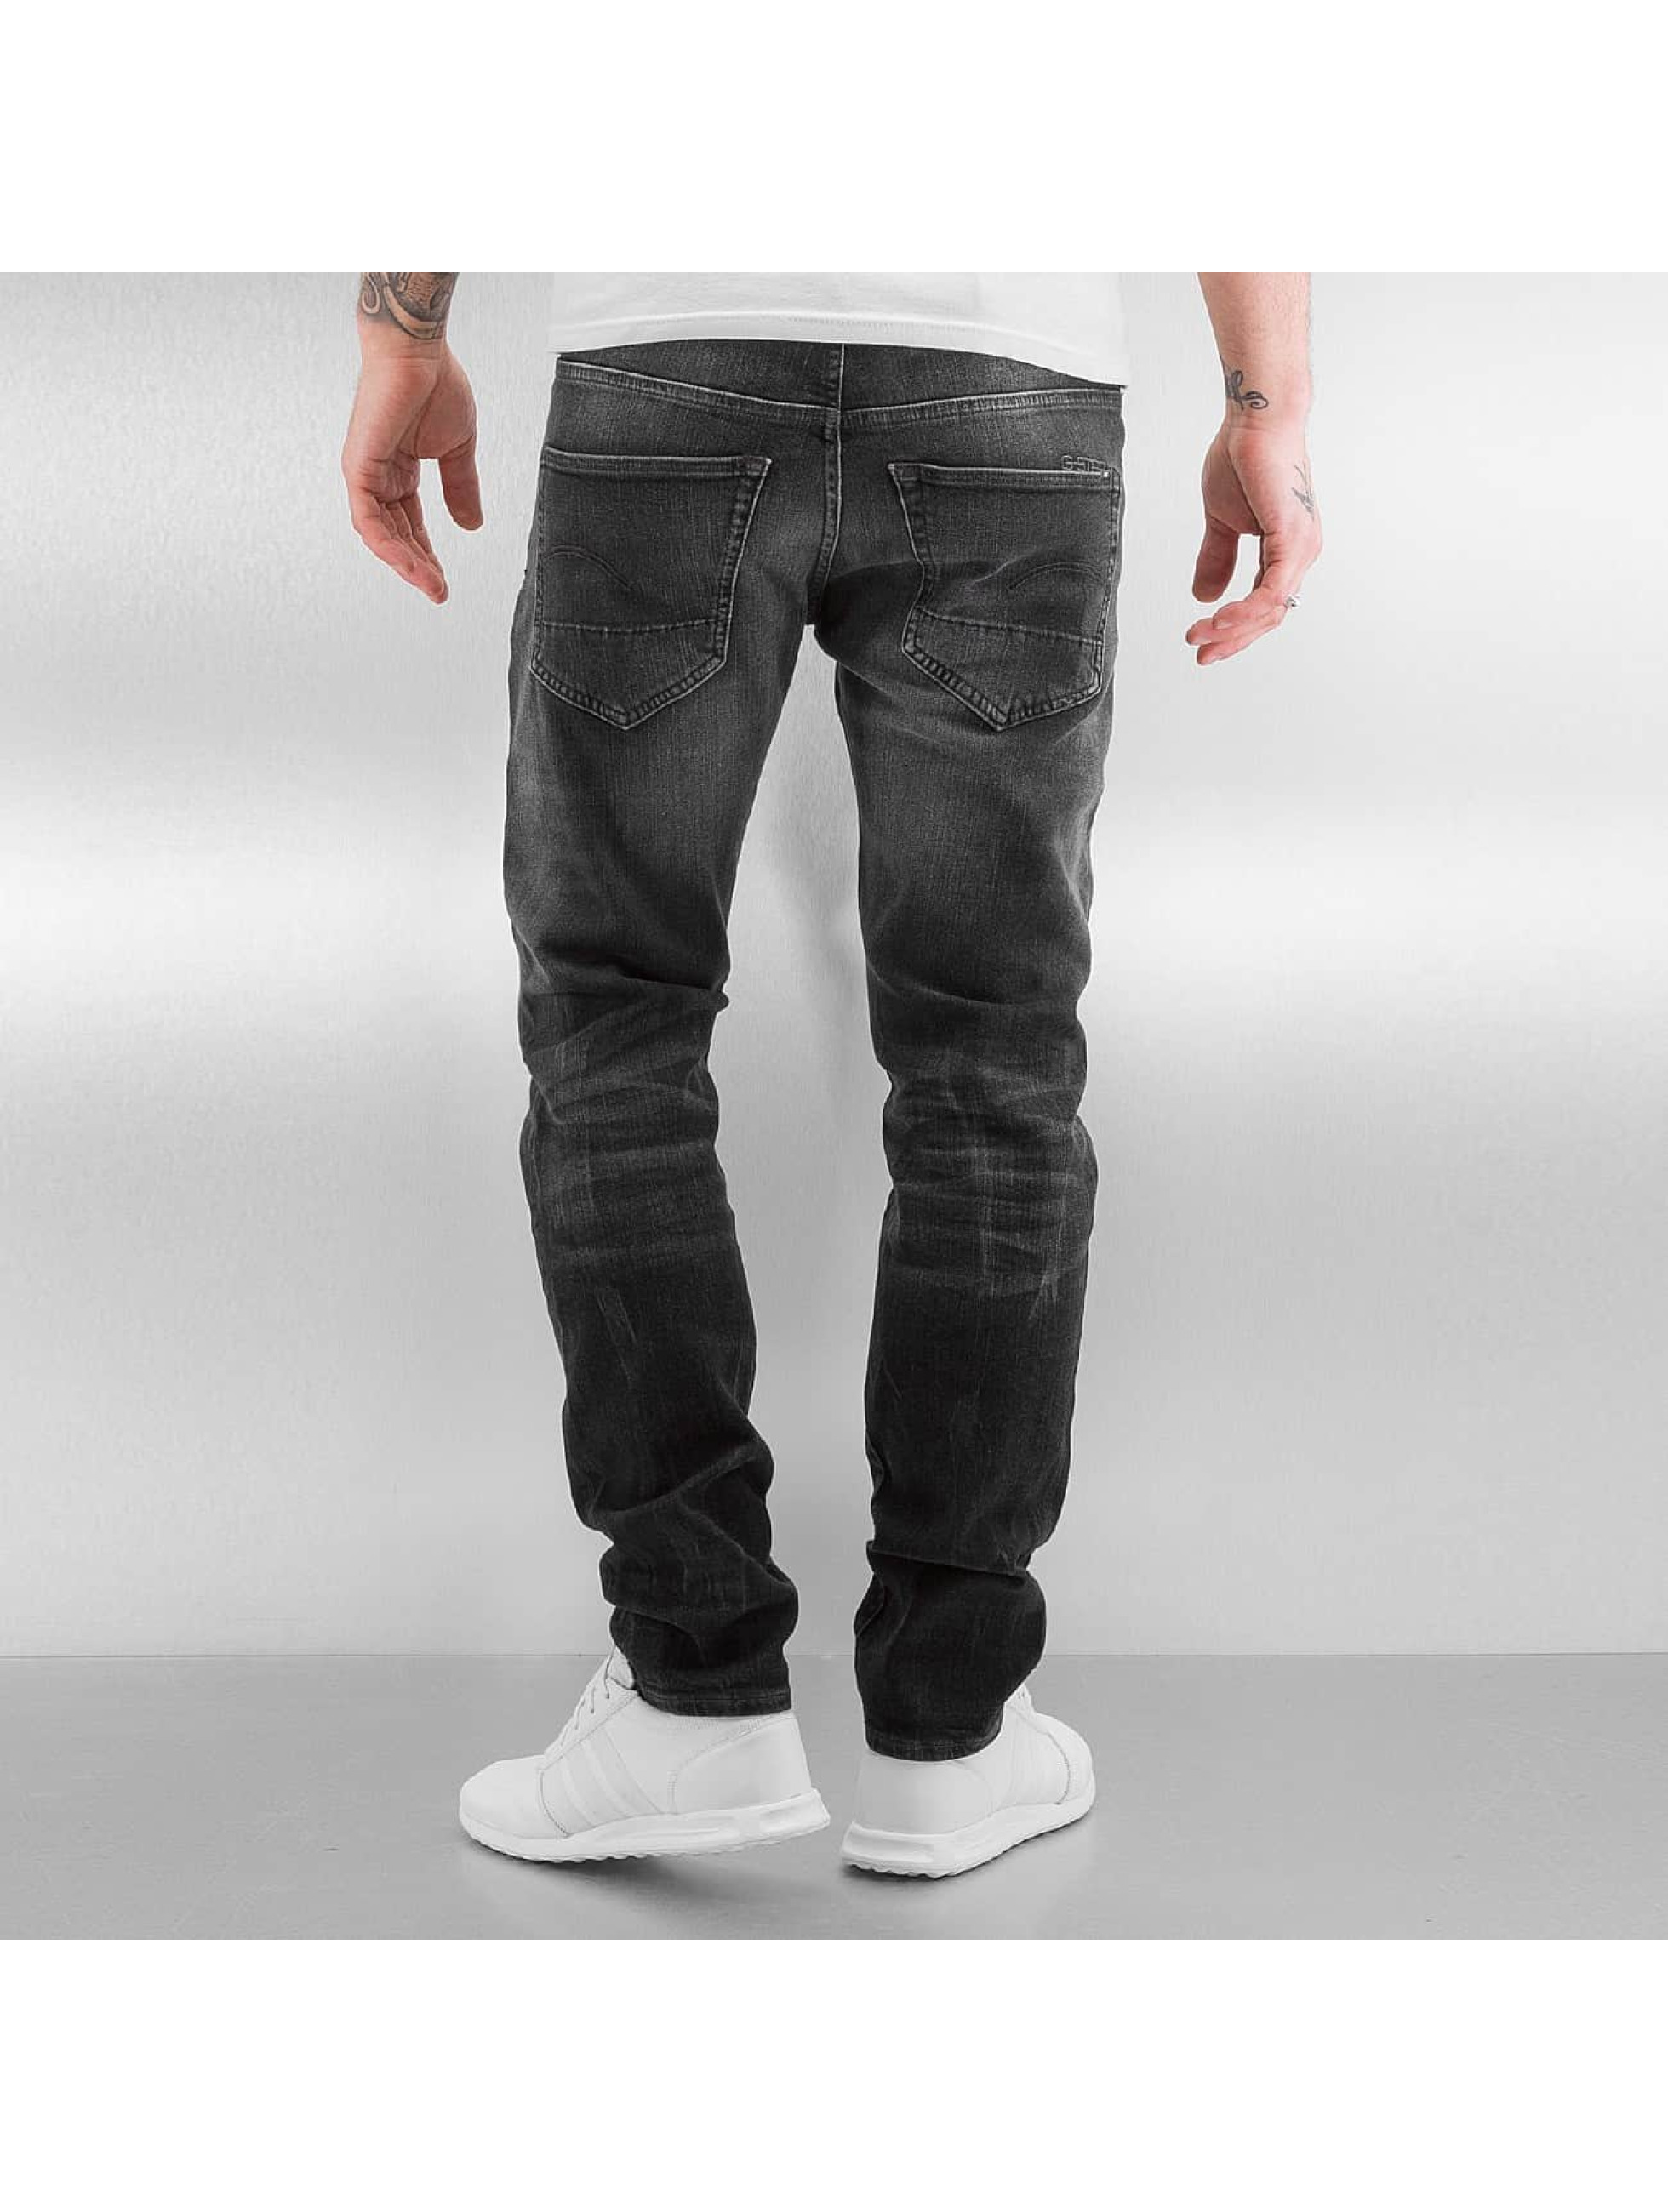 G-Star Antifit 3301 Tapered Slader Bionic Black zwart